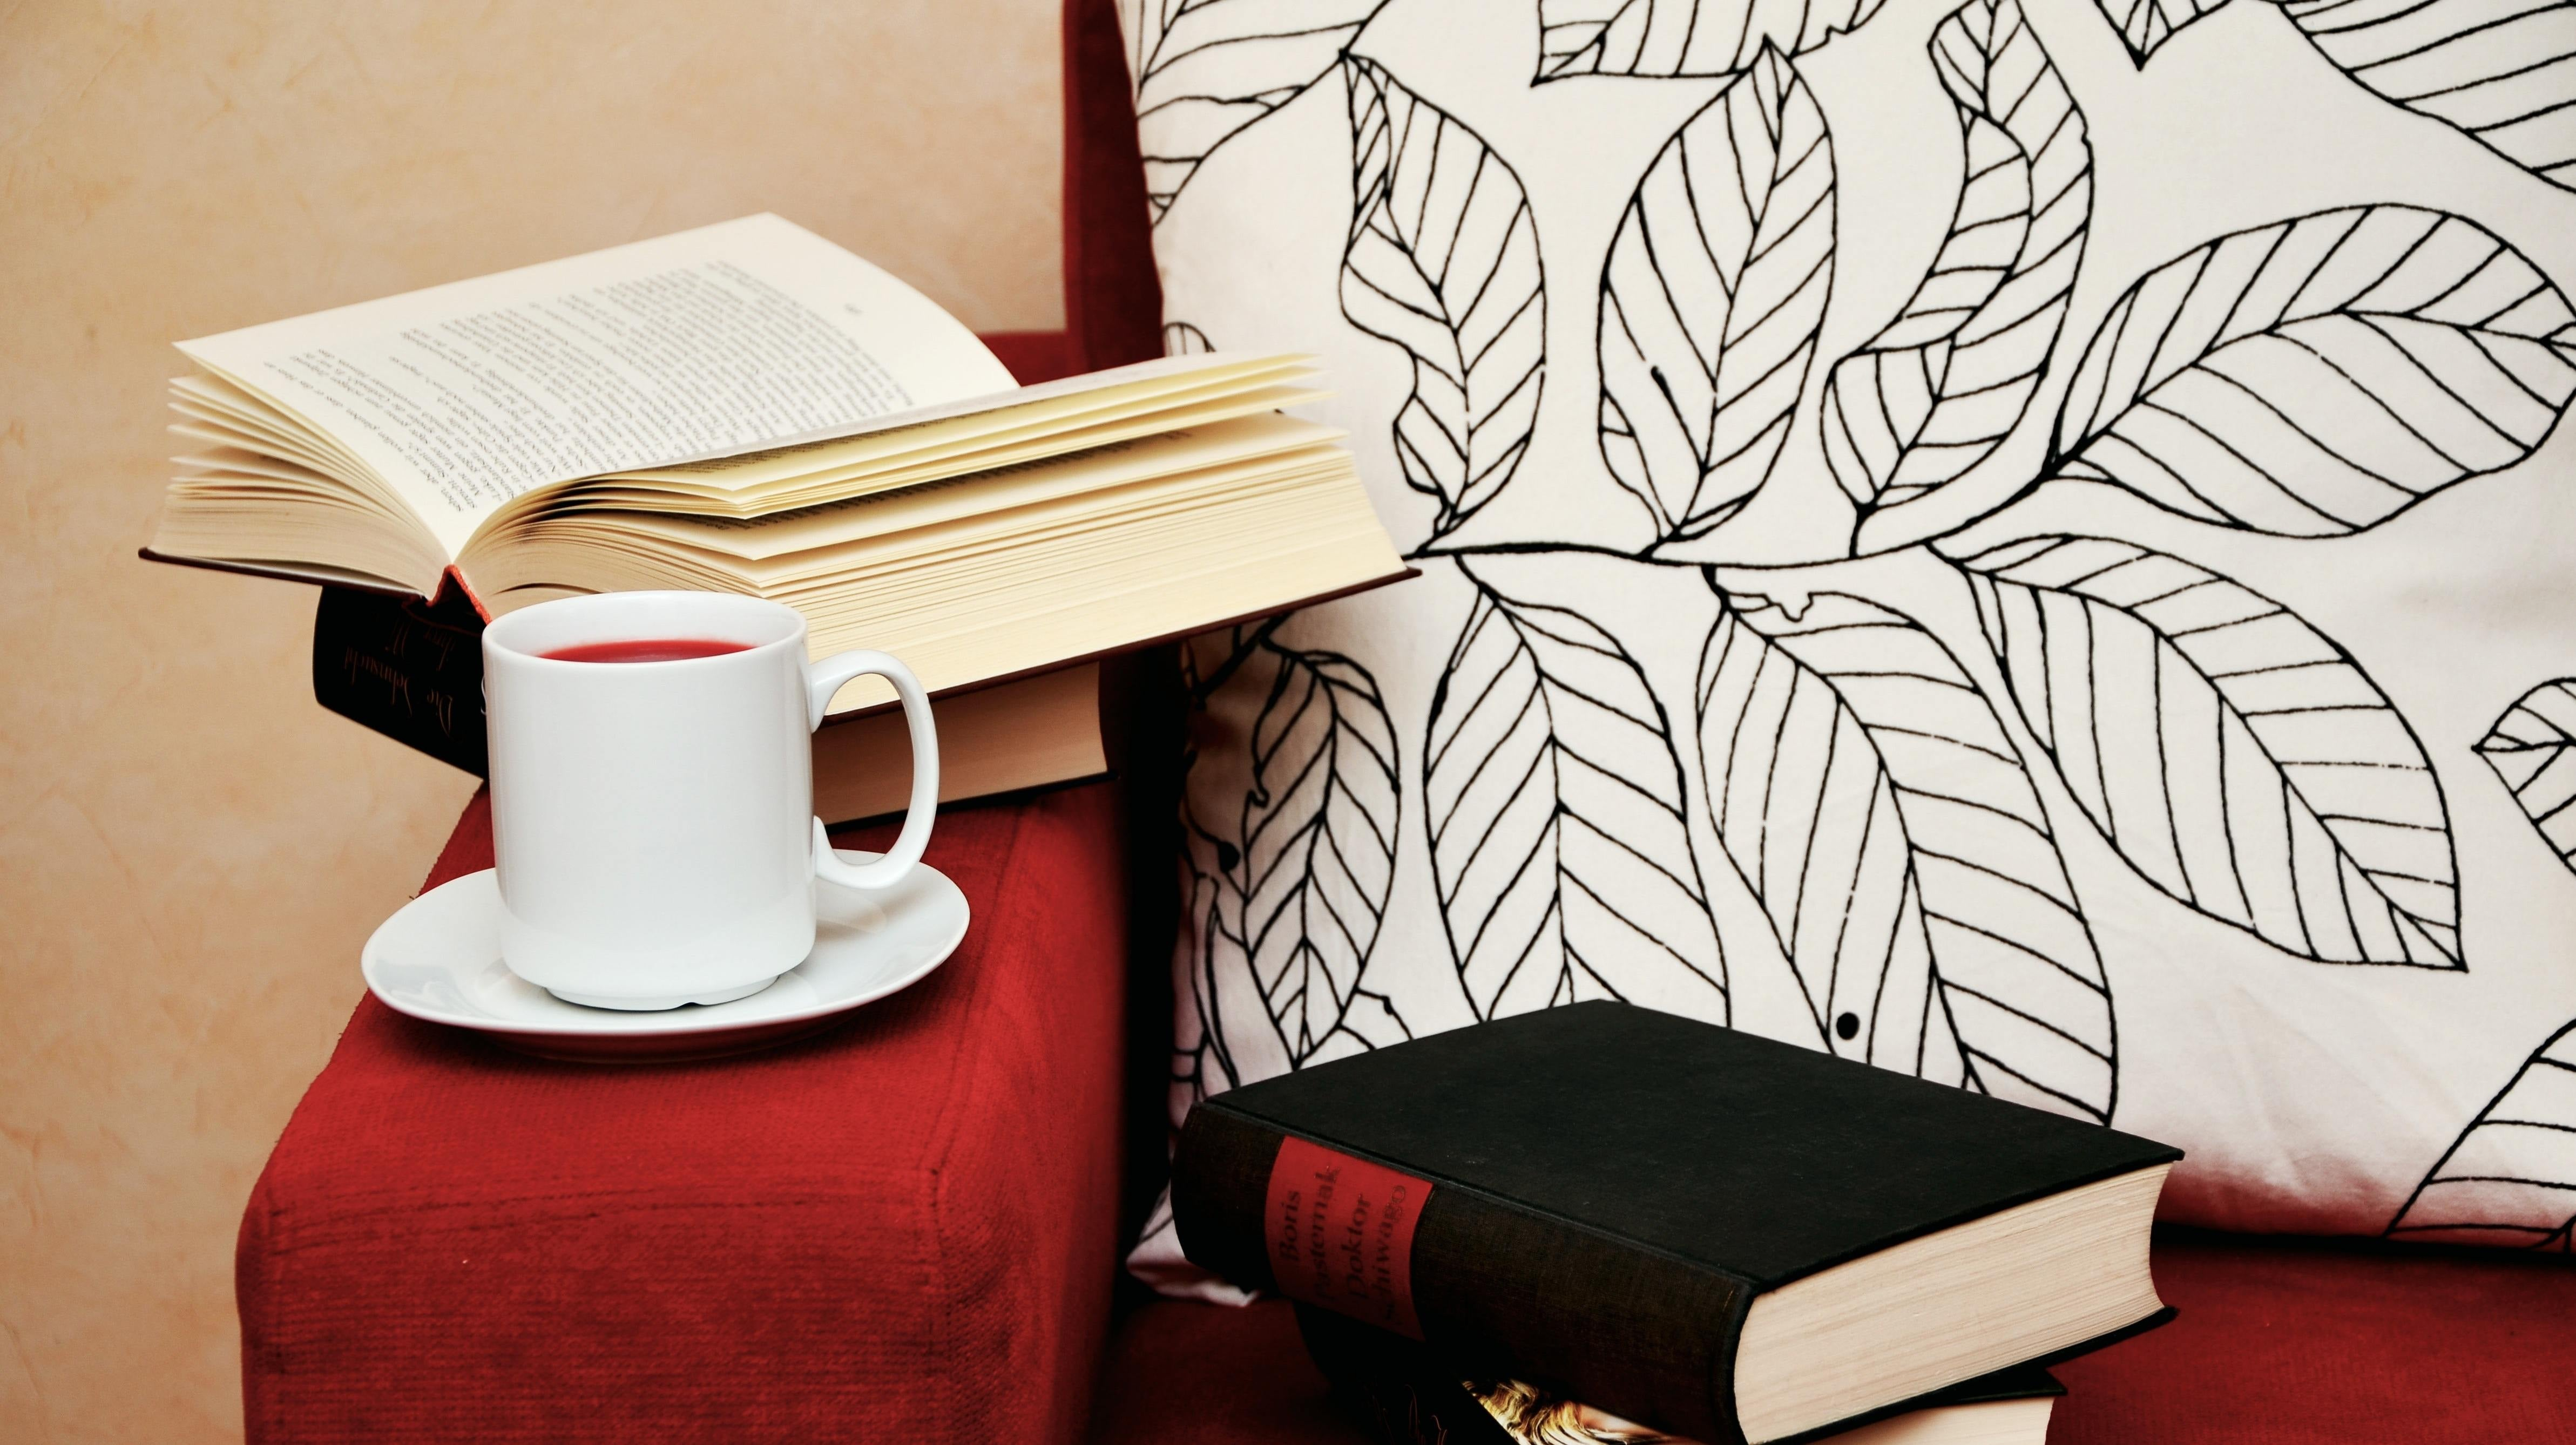 Lifehacker Staff's Winter Reading Picks